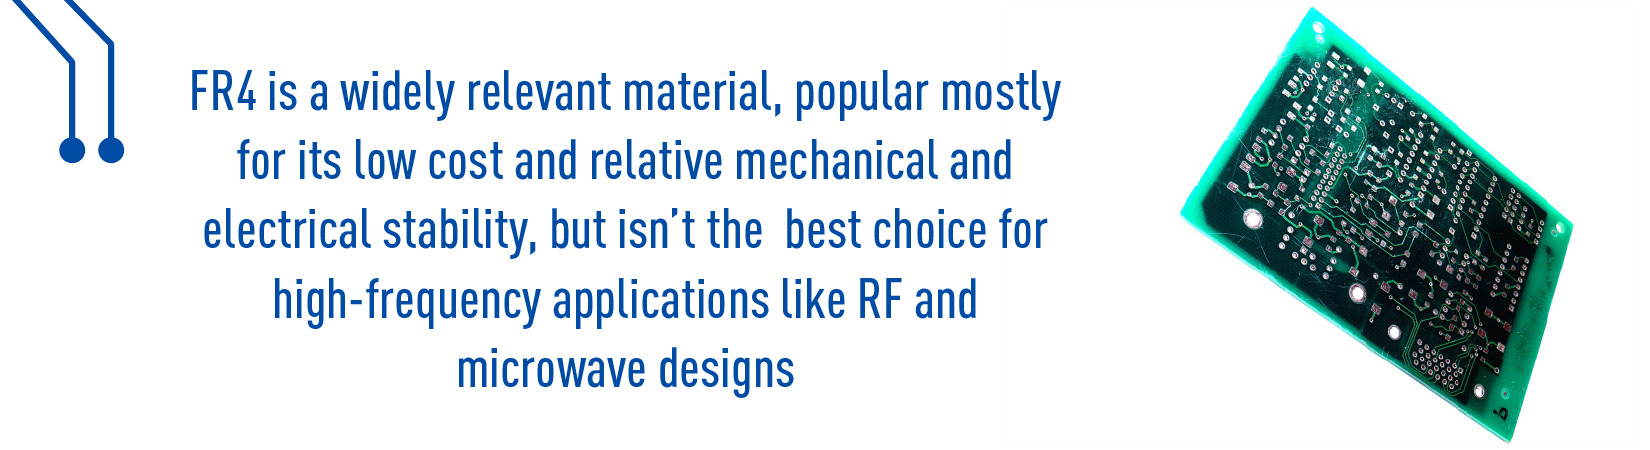 FR4 is widely relevant material, popular mostly for its low cost relative mechanical and electrical stability